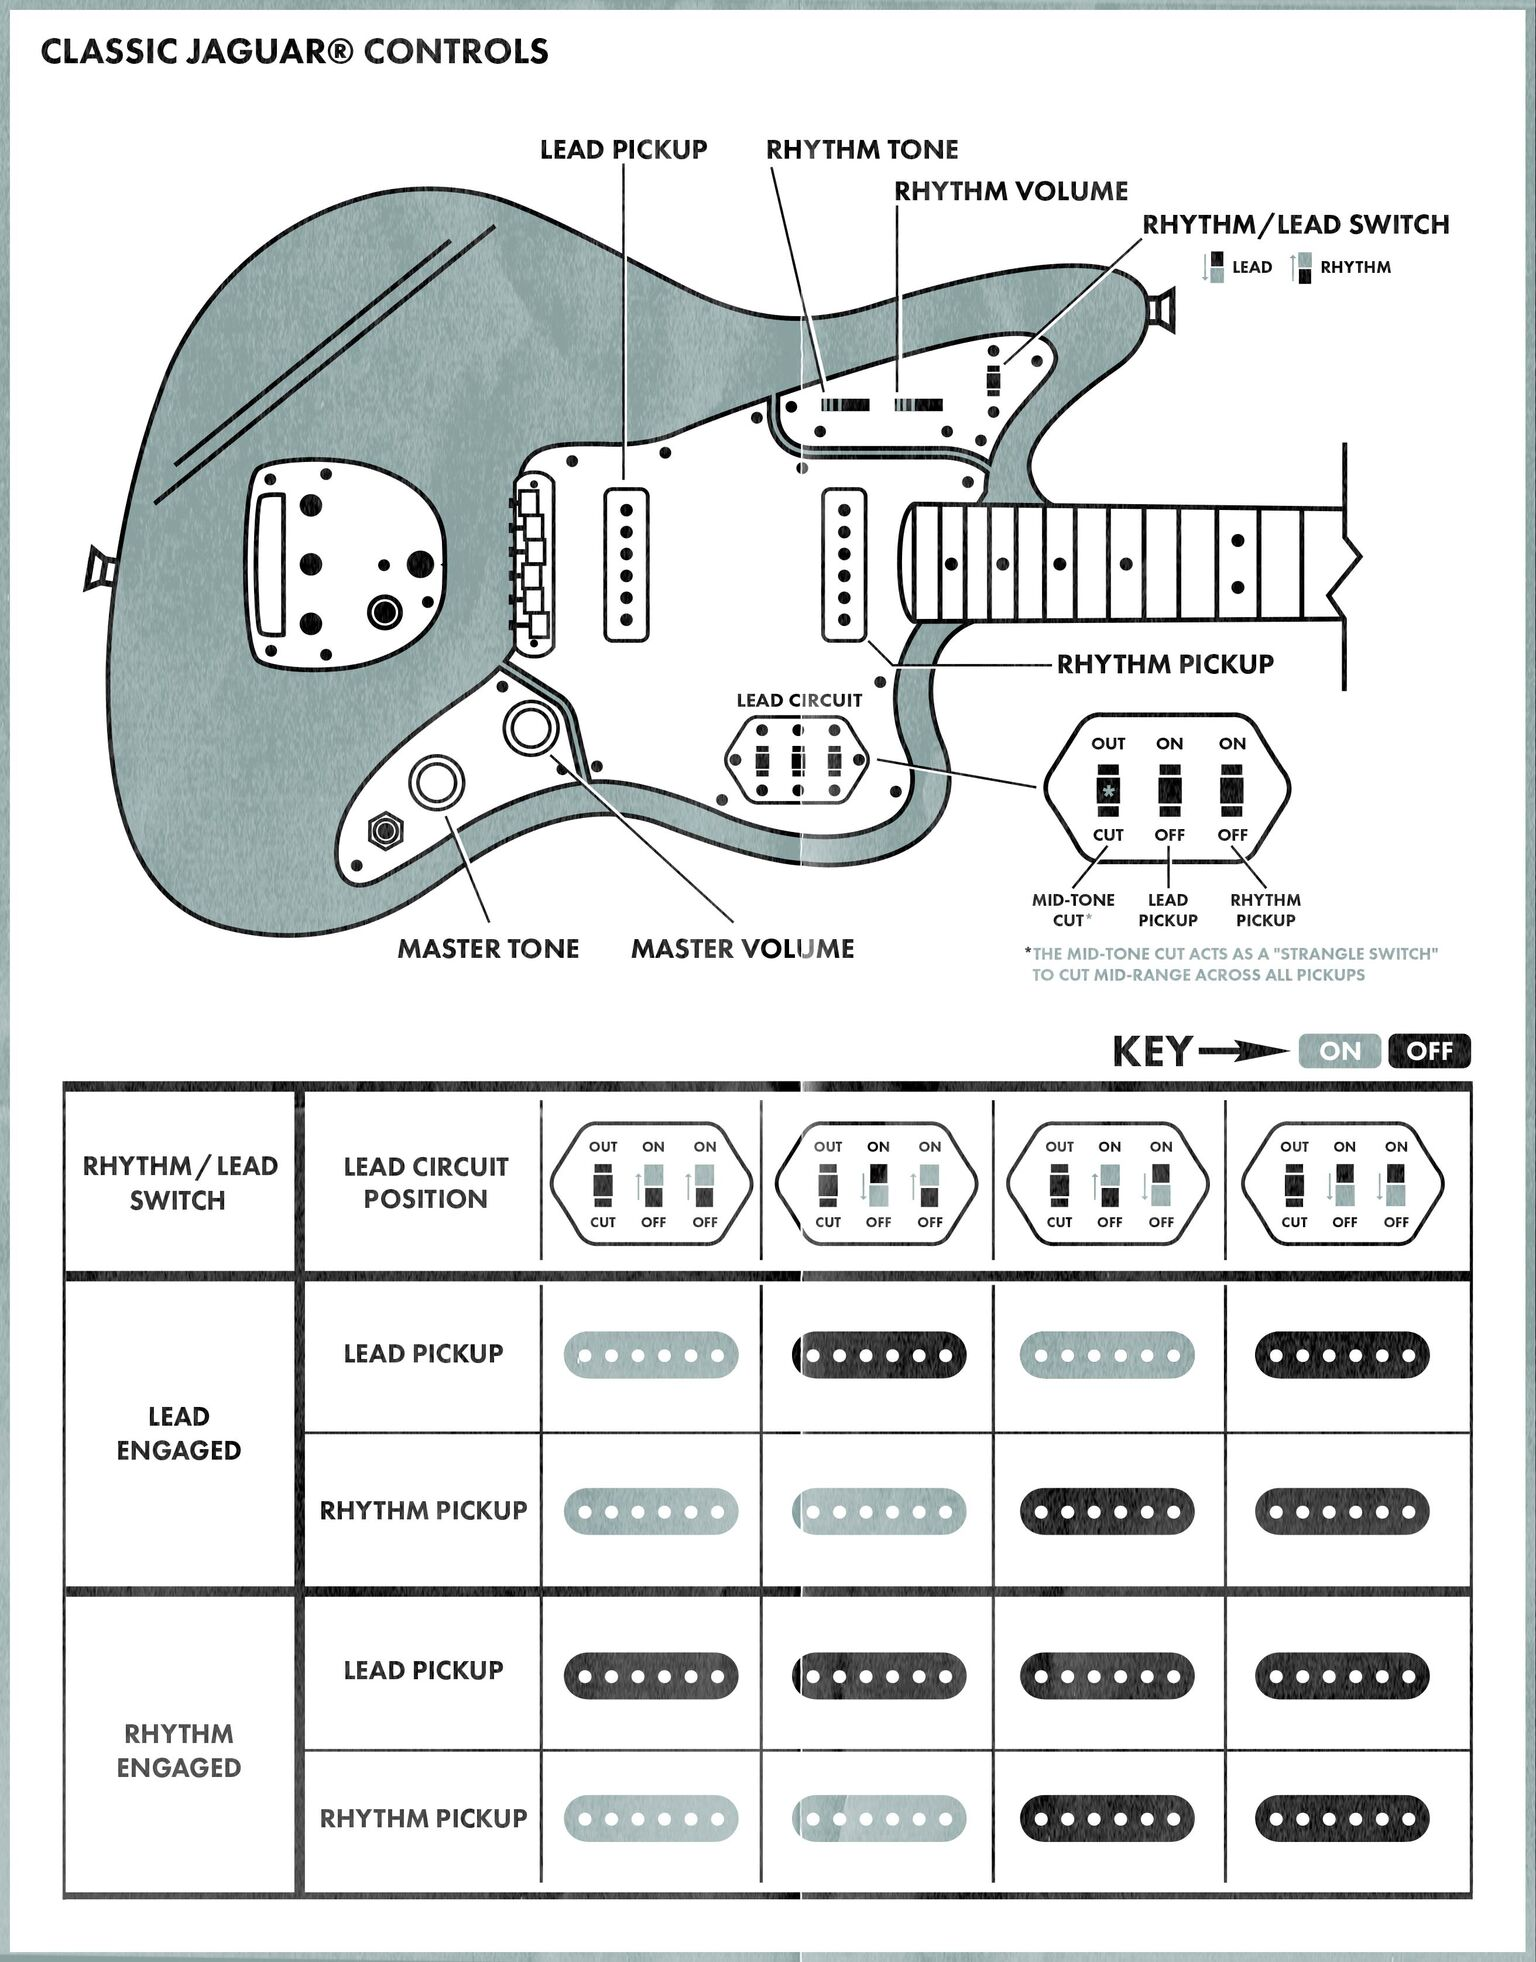 Showthread furthermore 3pdt Footswitch Pcbs likewise Foot switch pedal USB wah furthermore 1996 Jeep Cherokee Wiring Diagram besides What Are All Those Extra Controls On The Fender Jazzmaster. on guitar switch wiring